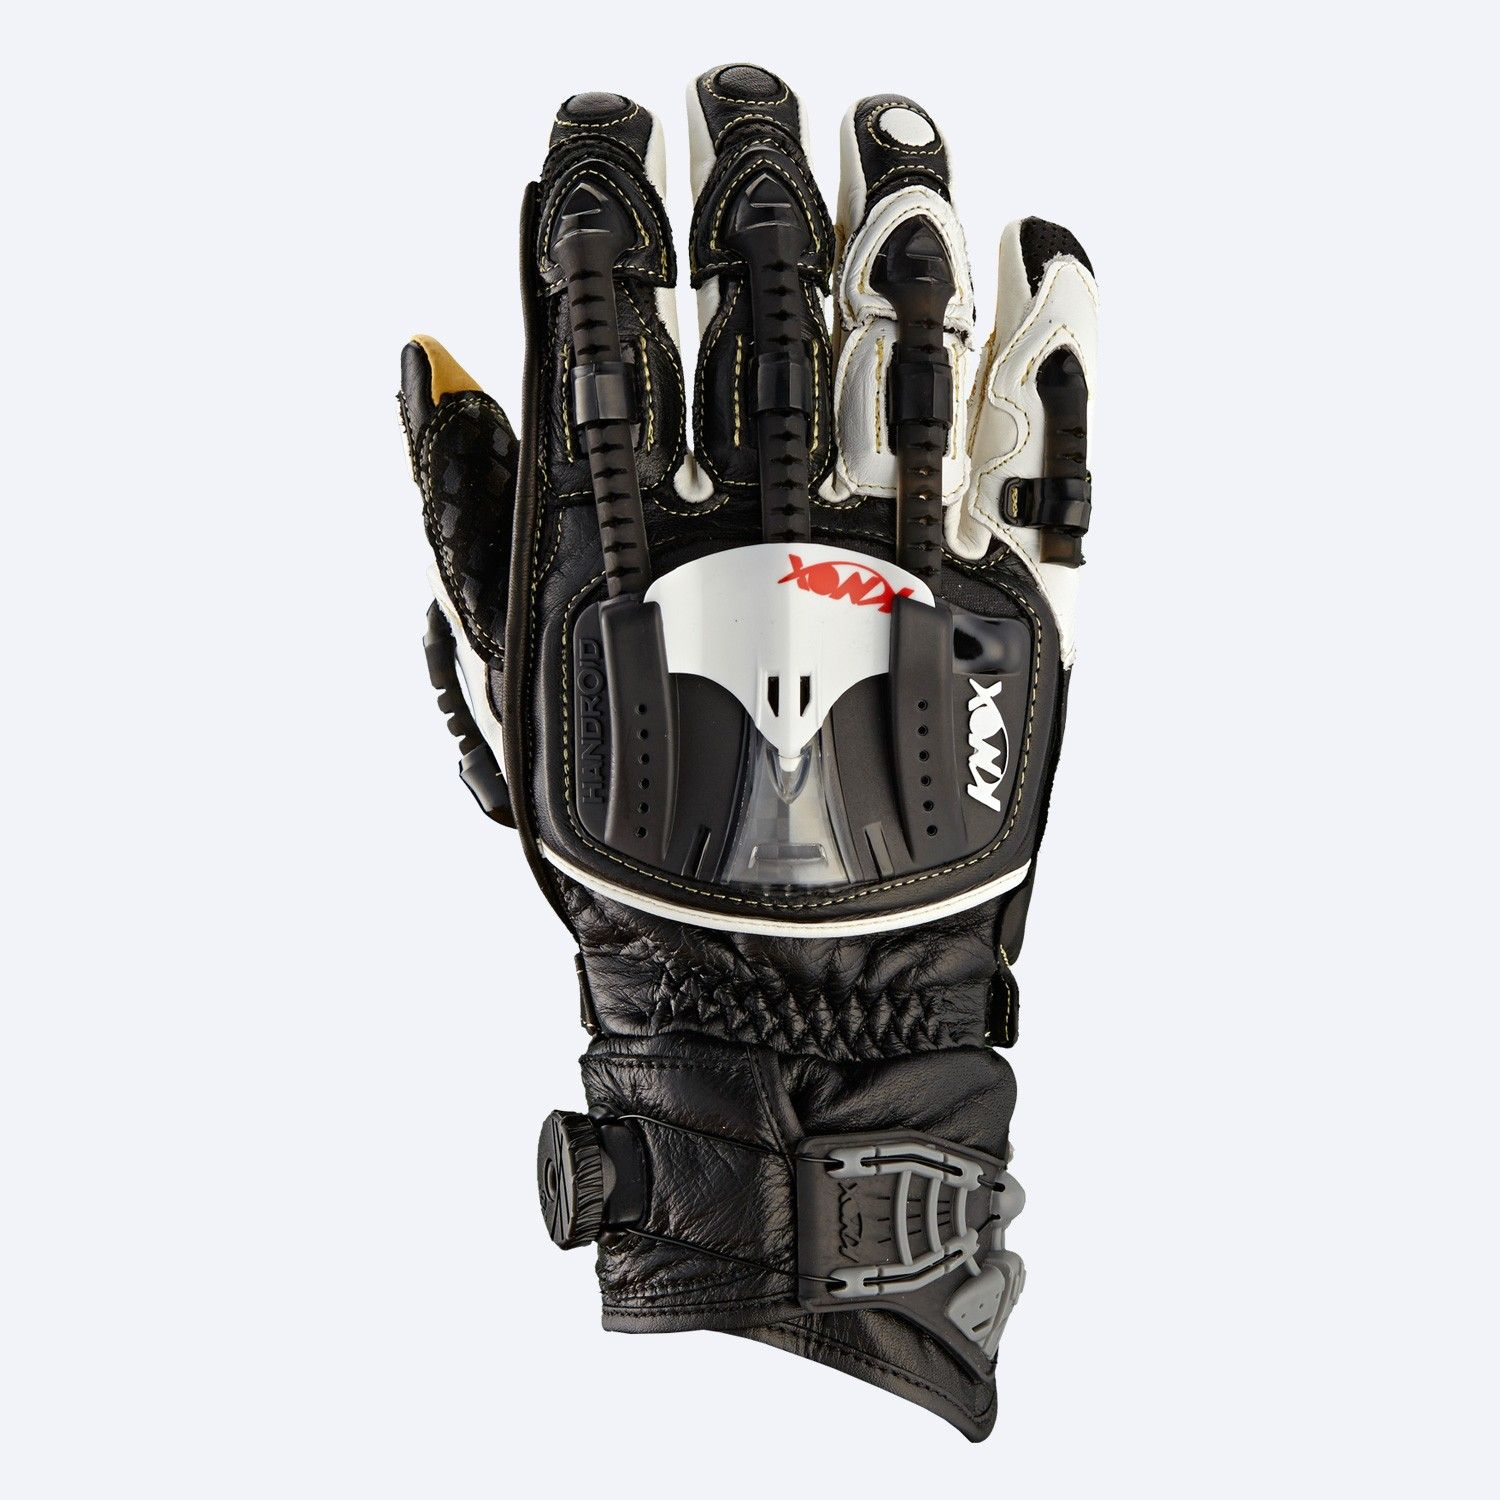 Handroid Pod MK3 Gloves | Riding Gear | Motorcycle gloves ...